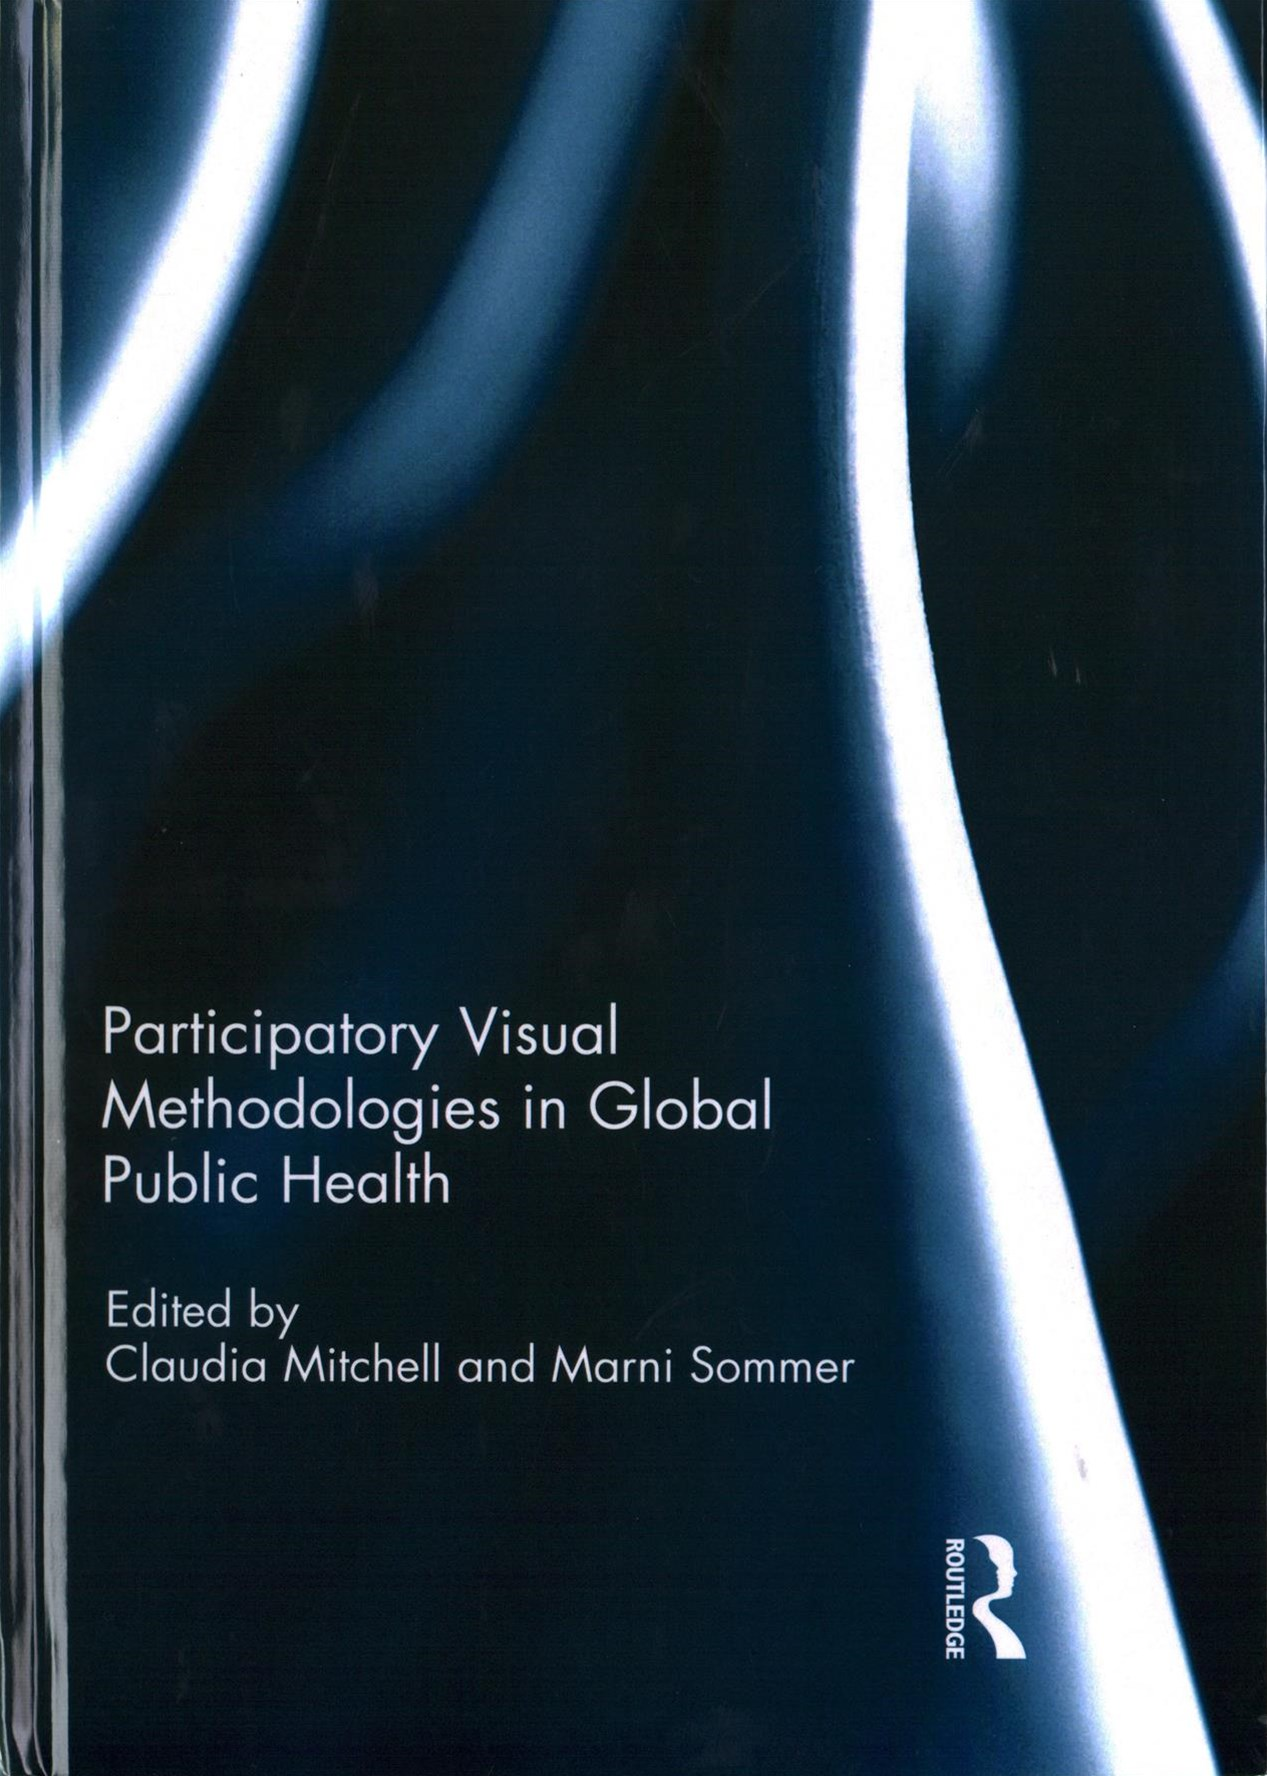 Participatory Visual Methodologies in Global Public Health